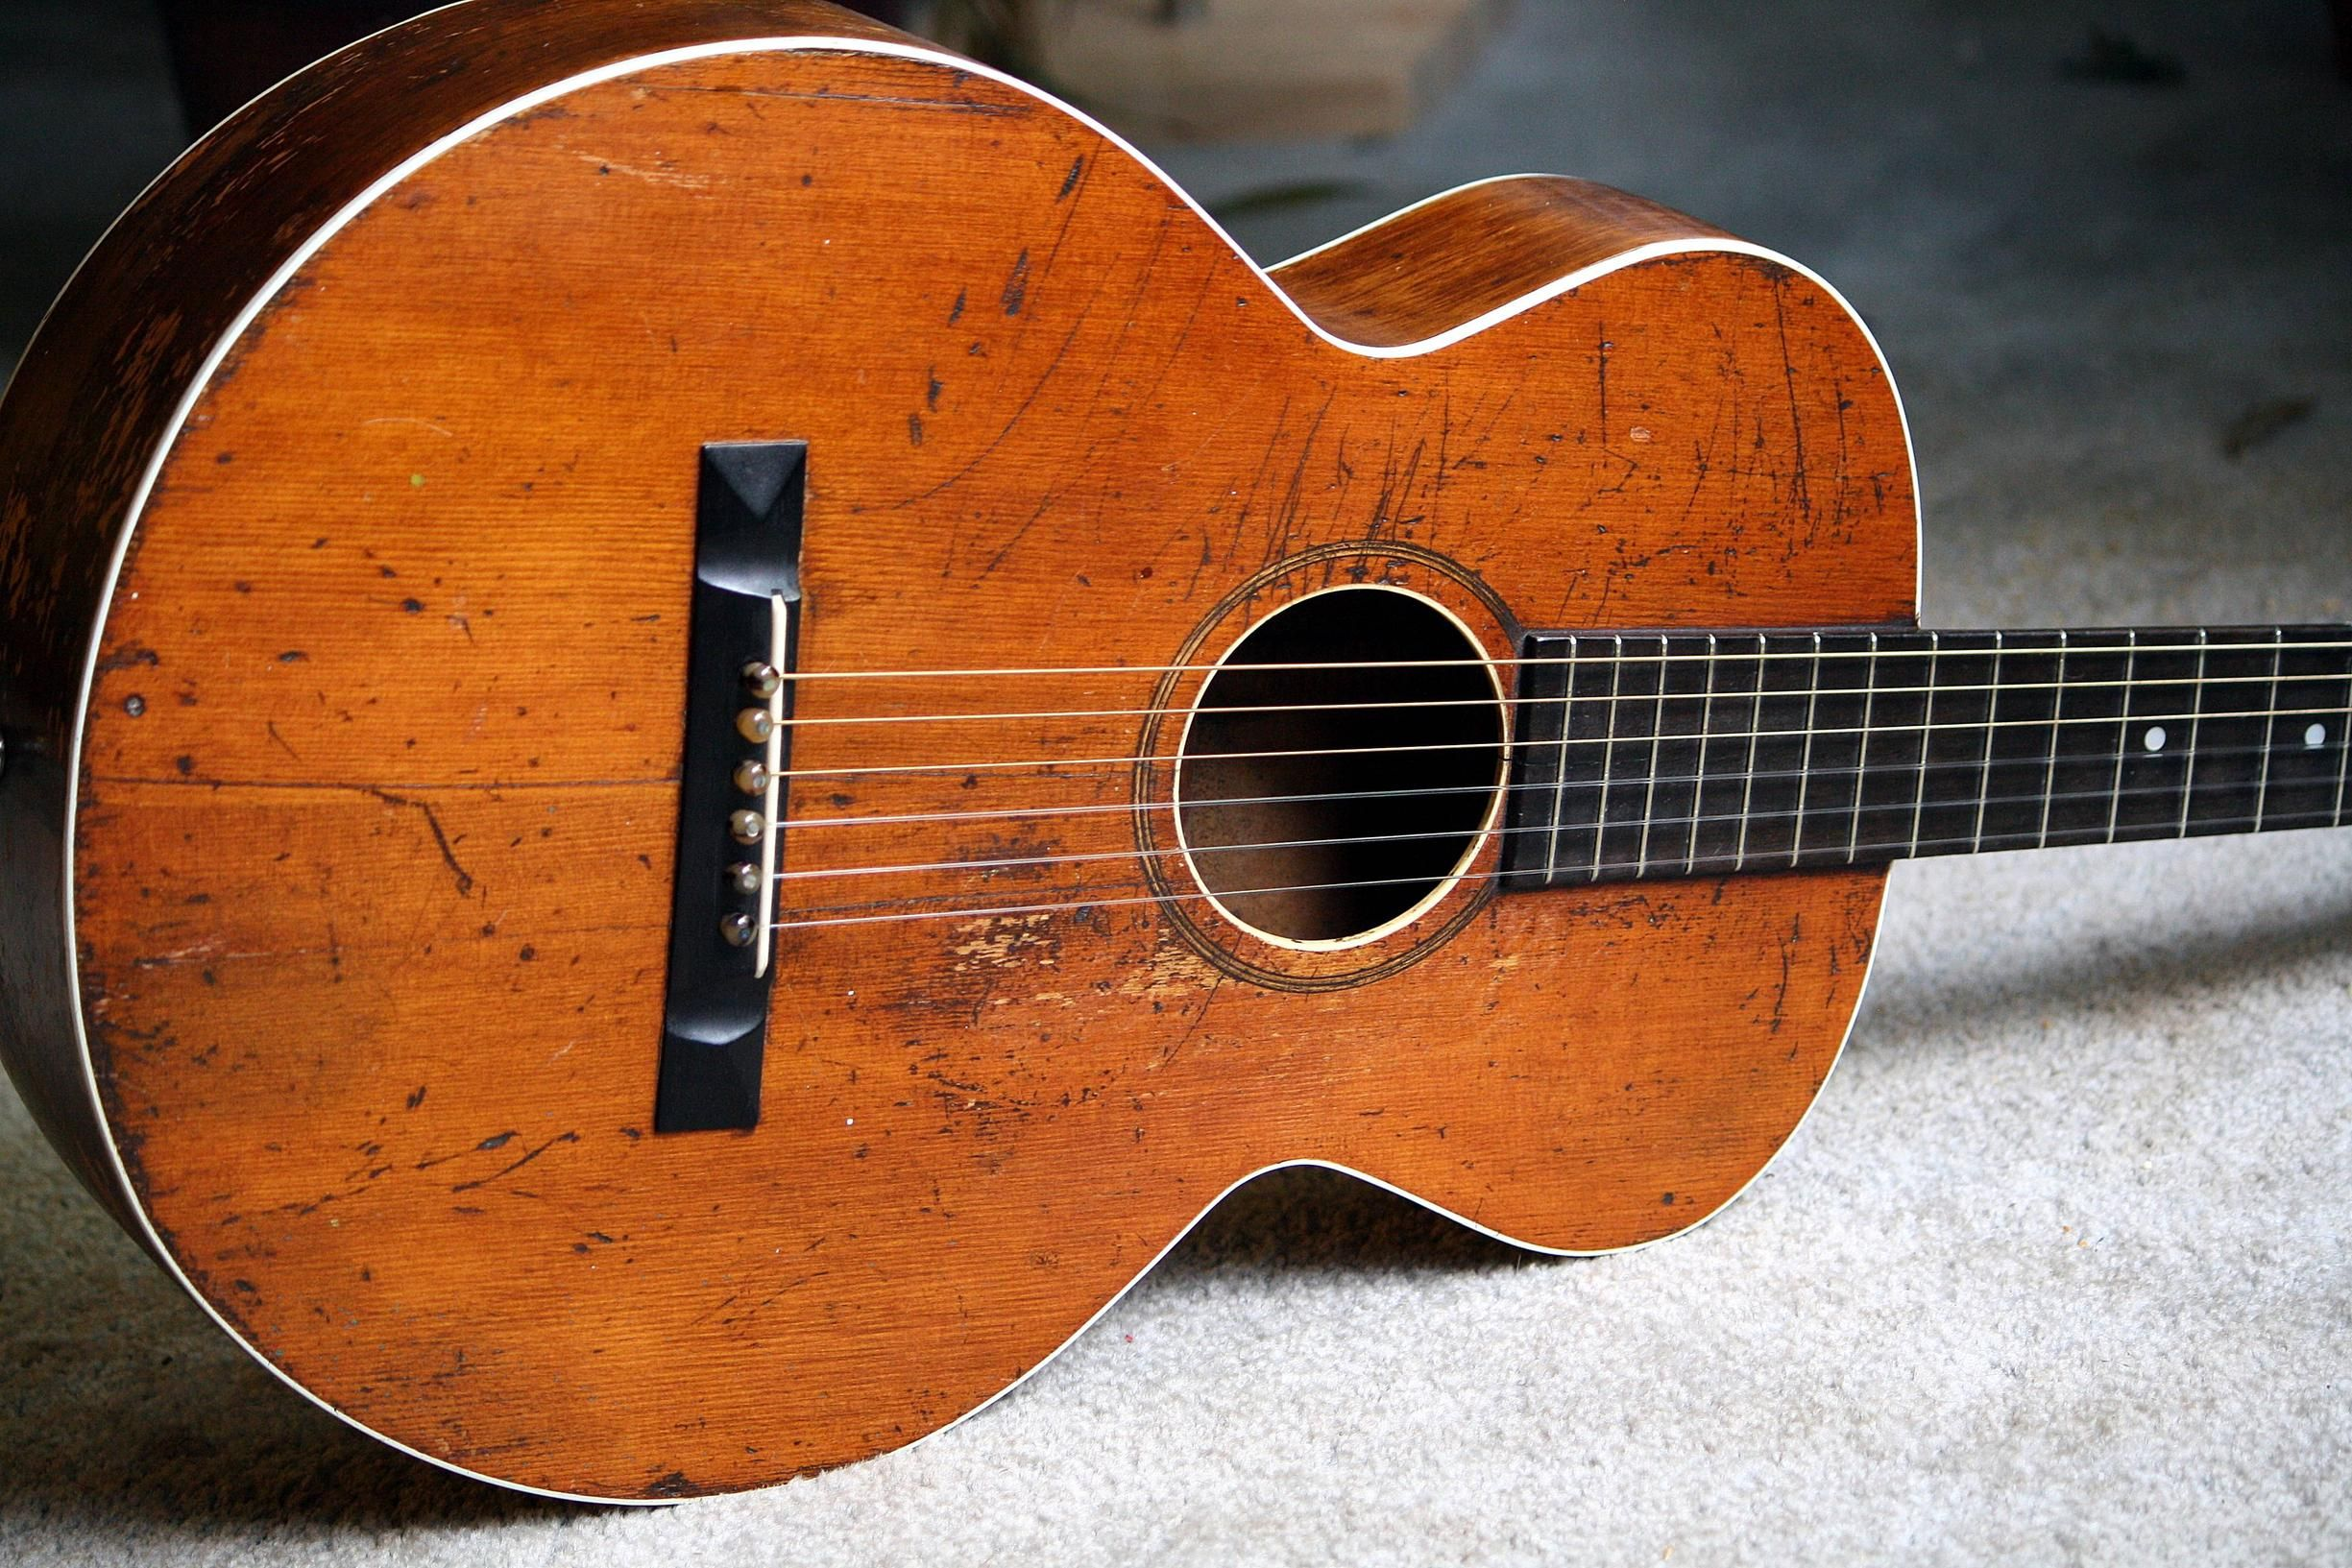 gibson l 1 1926 vintage acoustic guitar all things music gibson acoustic acoustic guitar. Black Bedroom Furniture Sets. Home Design Ideas